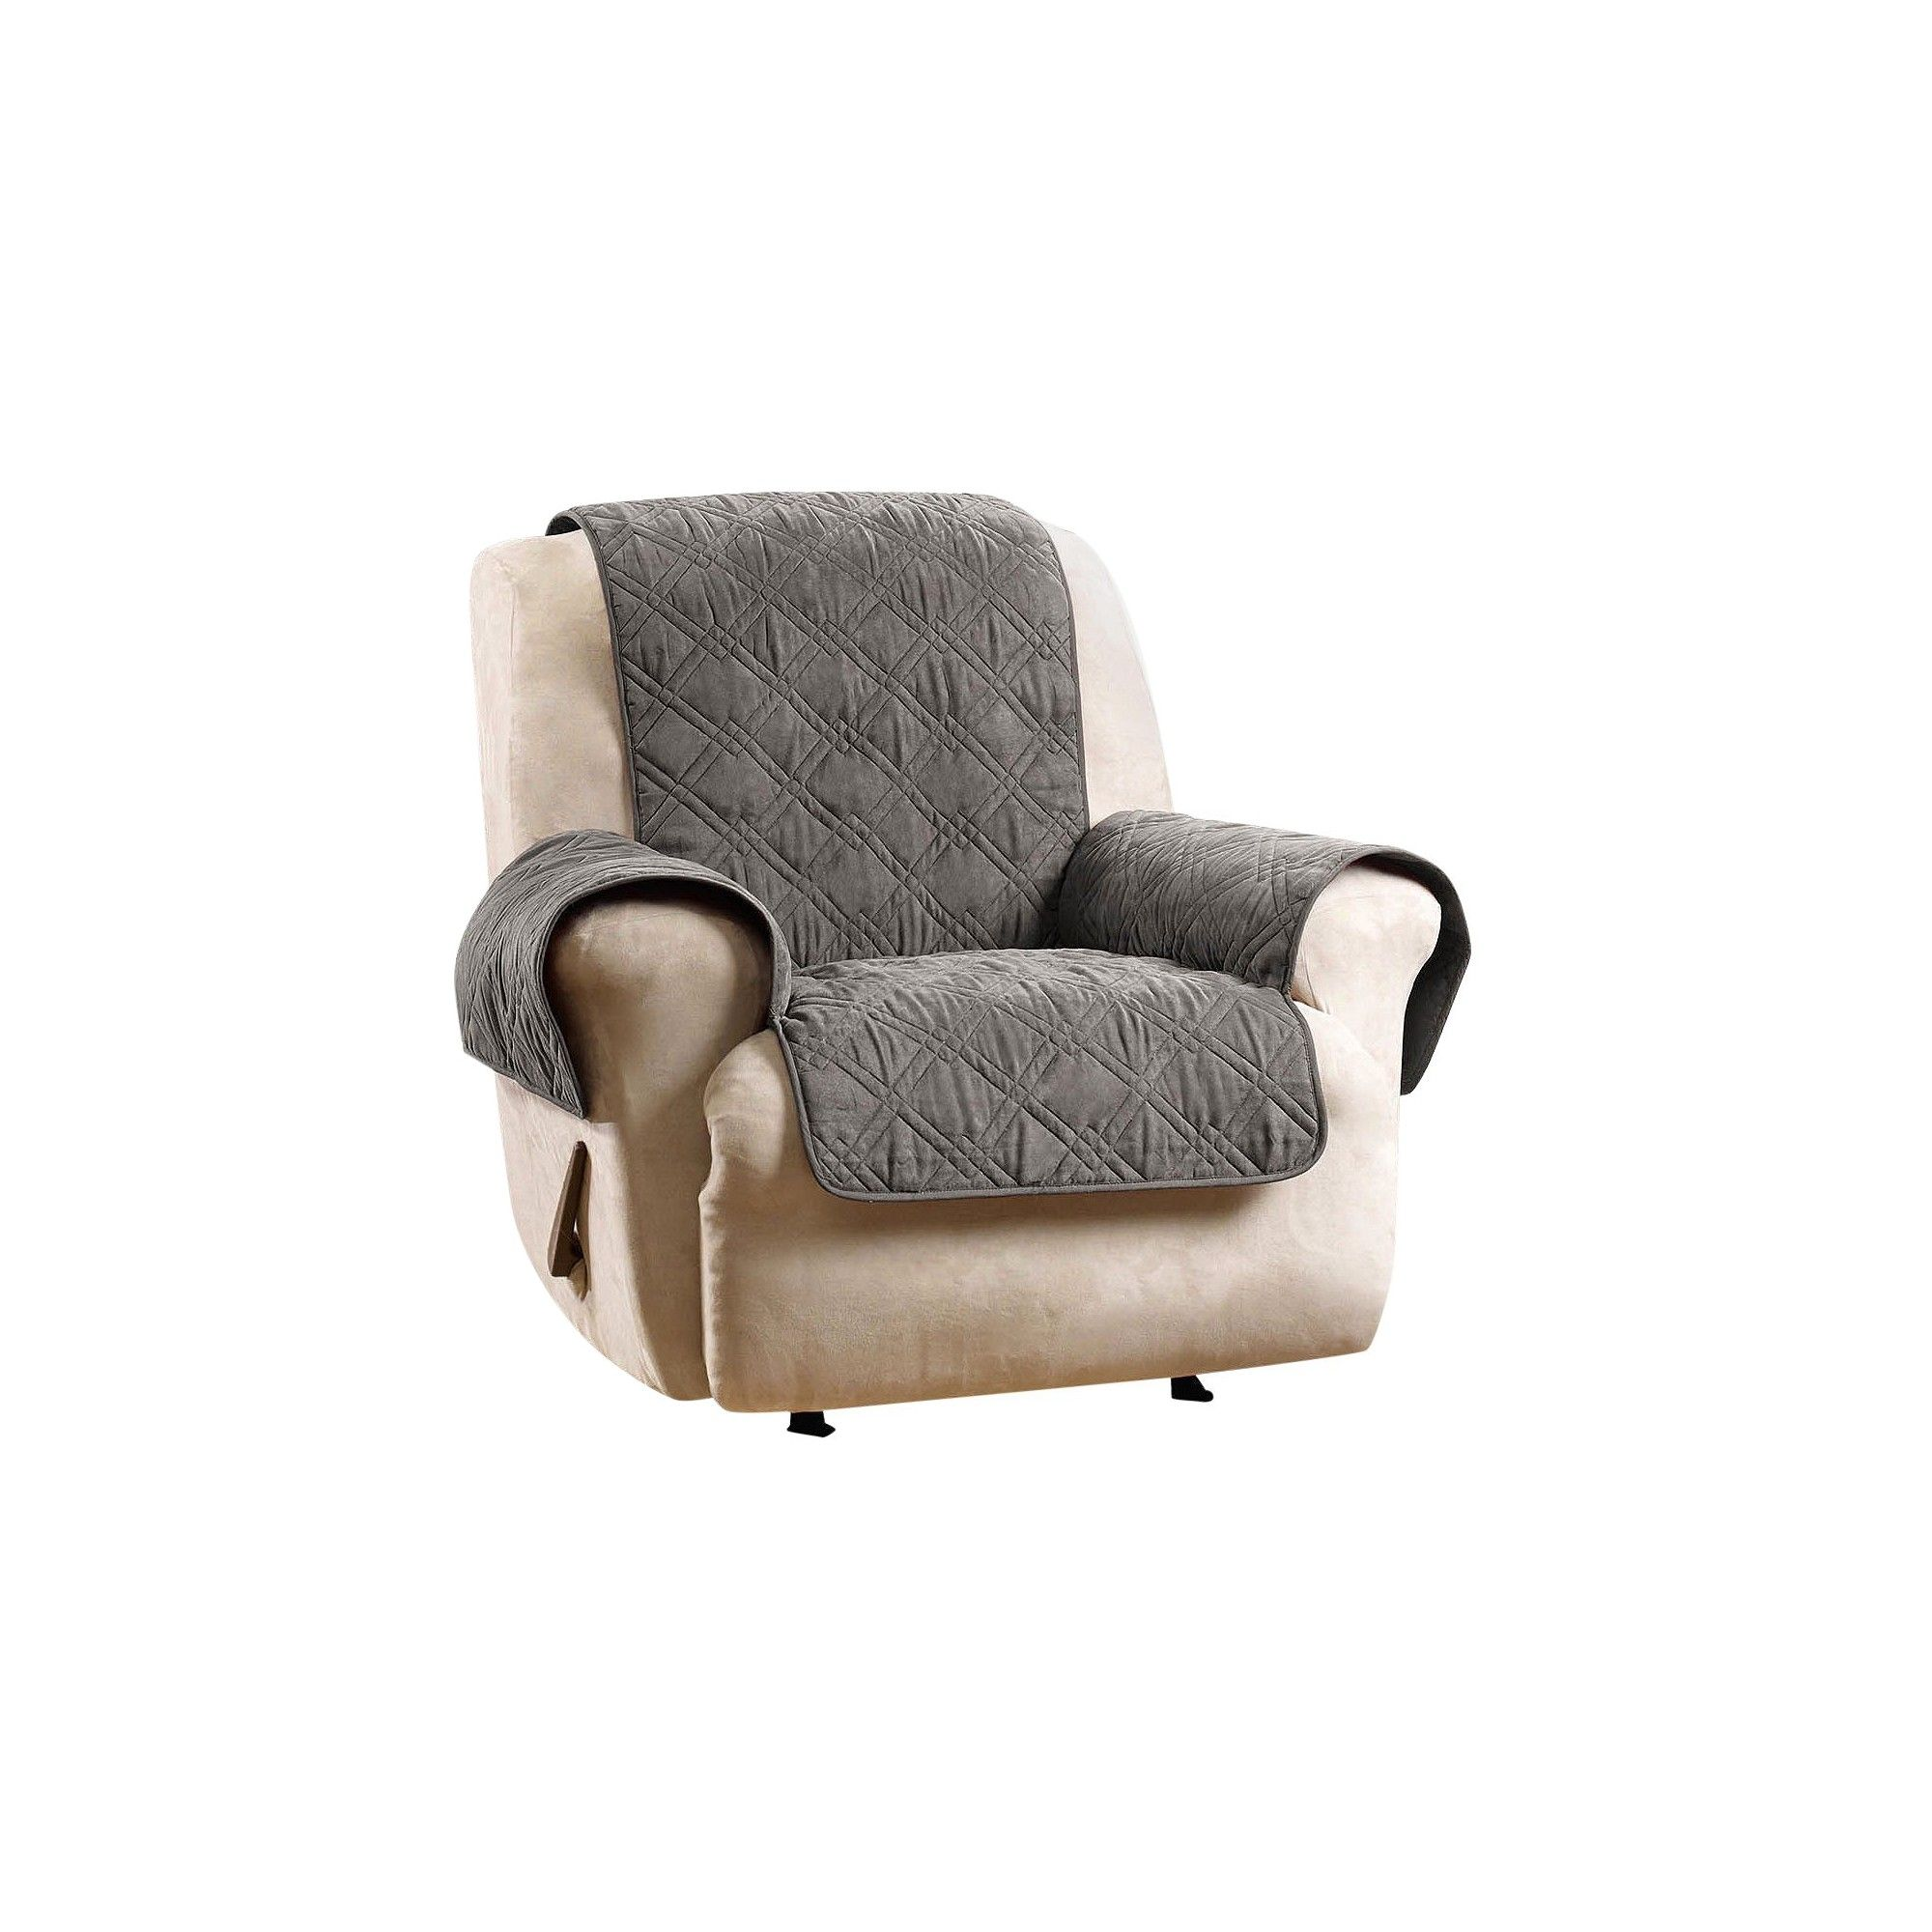 pin and products recliners recliner for slipcover slipcovers